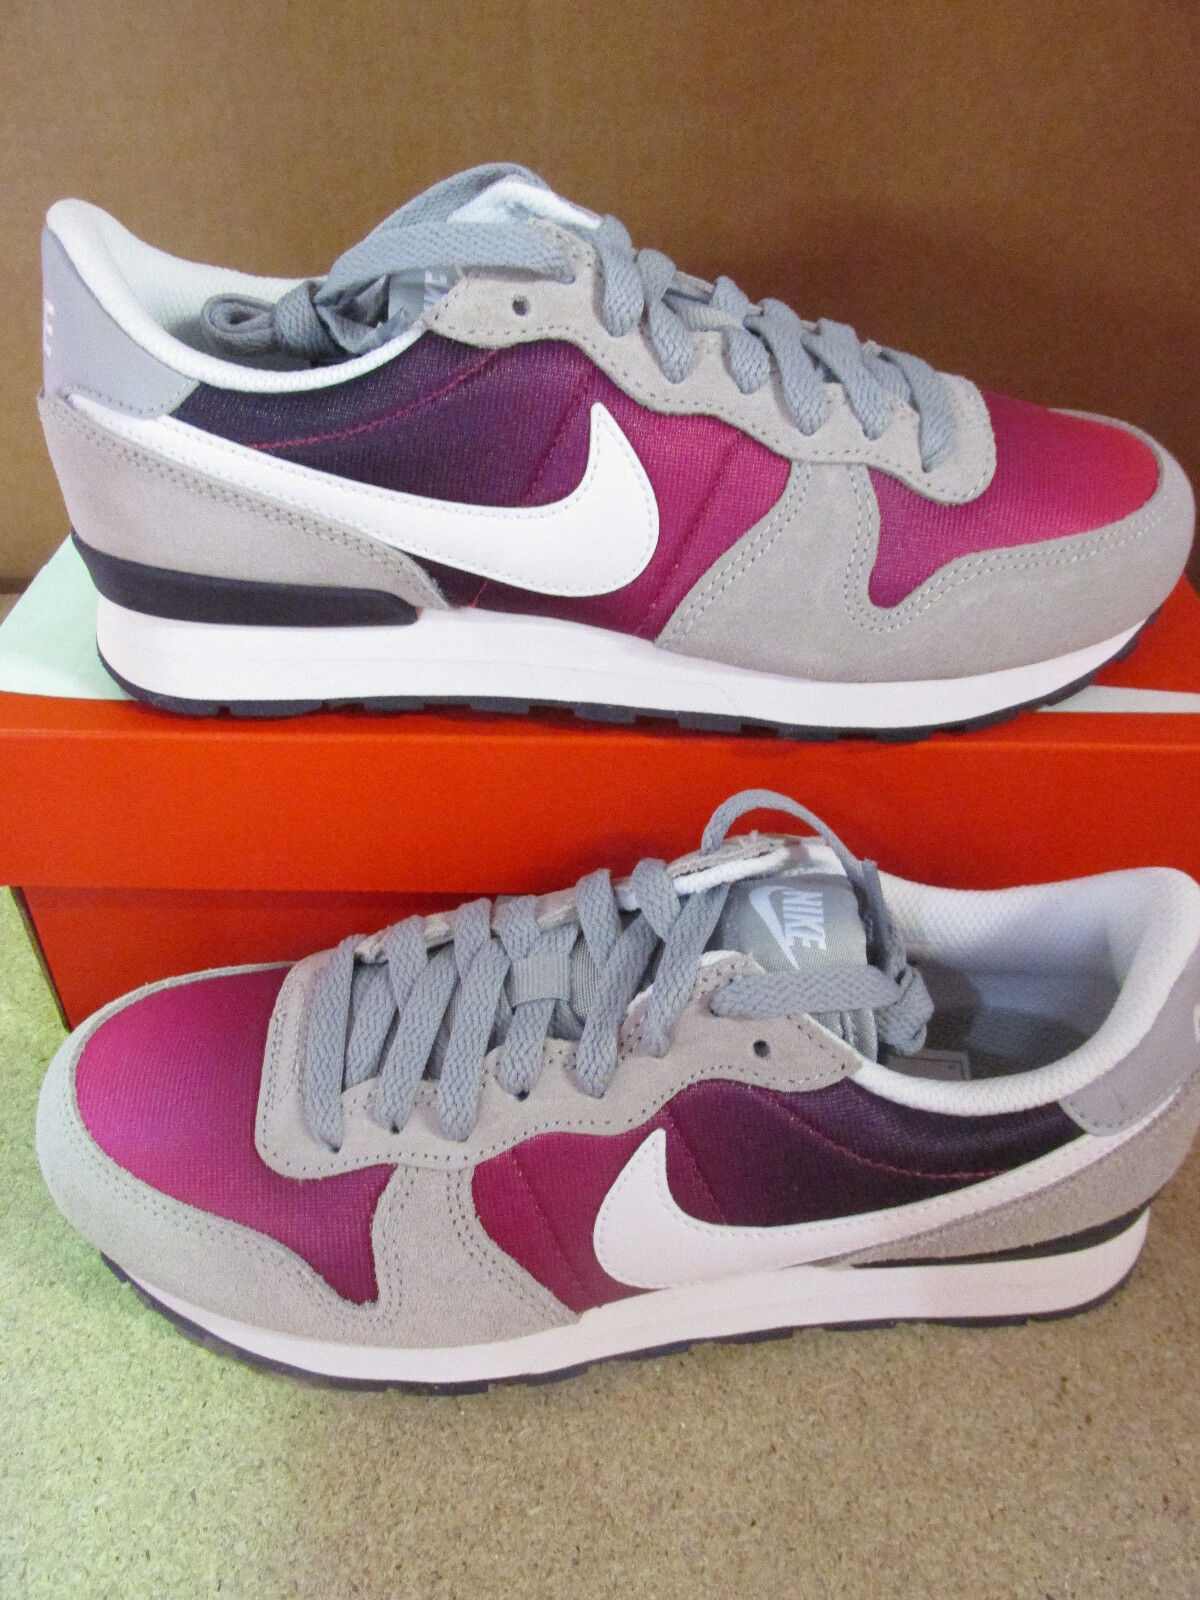 Nike Internationalist (GS) Trainers 814435 015 Sneakers Shoes